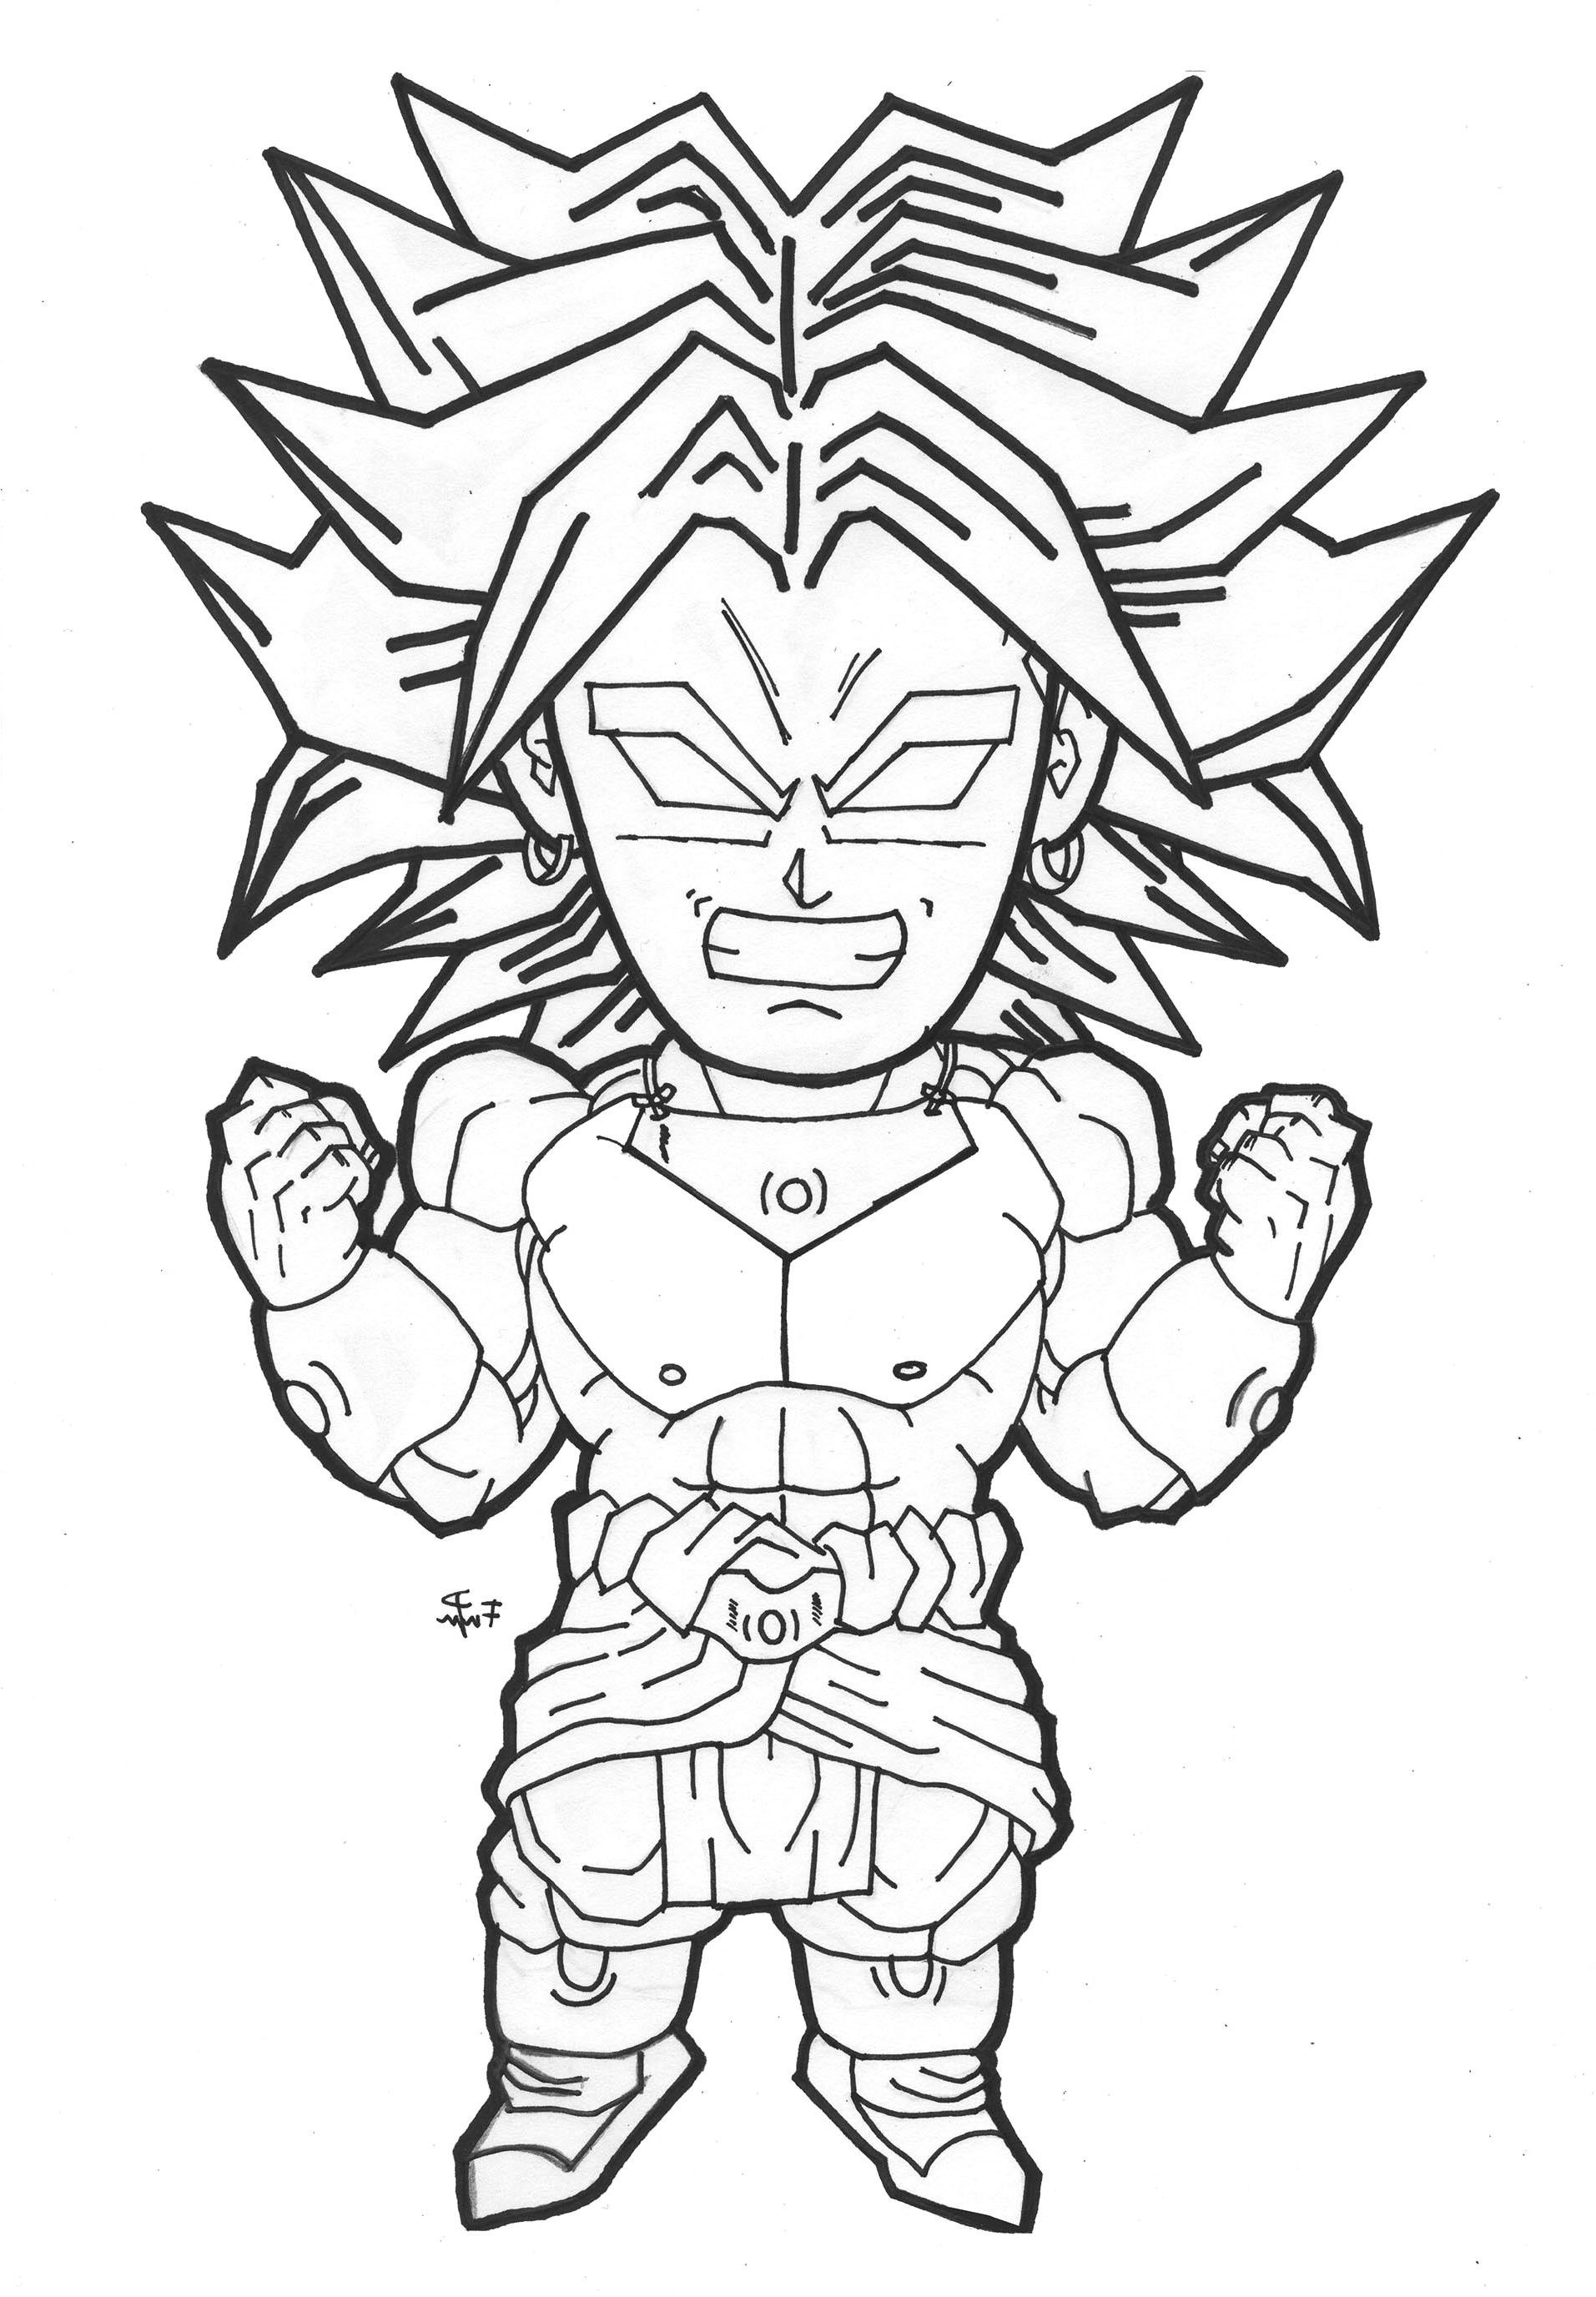 9 Cool De Dessin A Imprimer Dragon Ball Super Photographie Coloriage Dragon Ball Coloriage Dragon Coloriage Dragon Ball Z